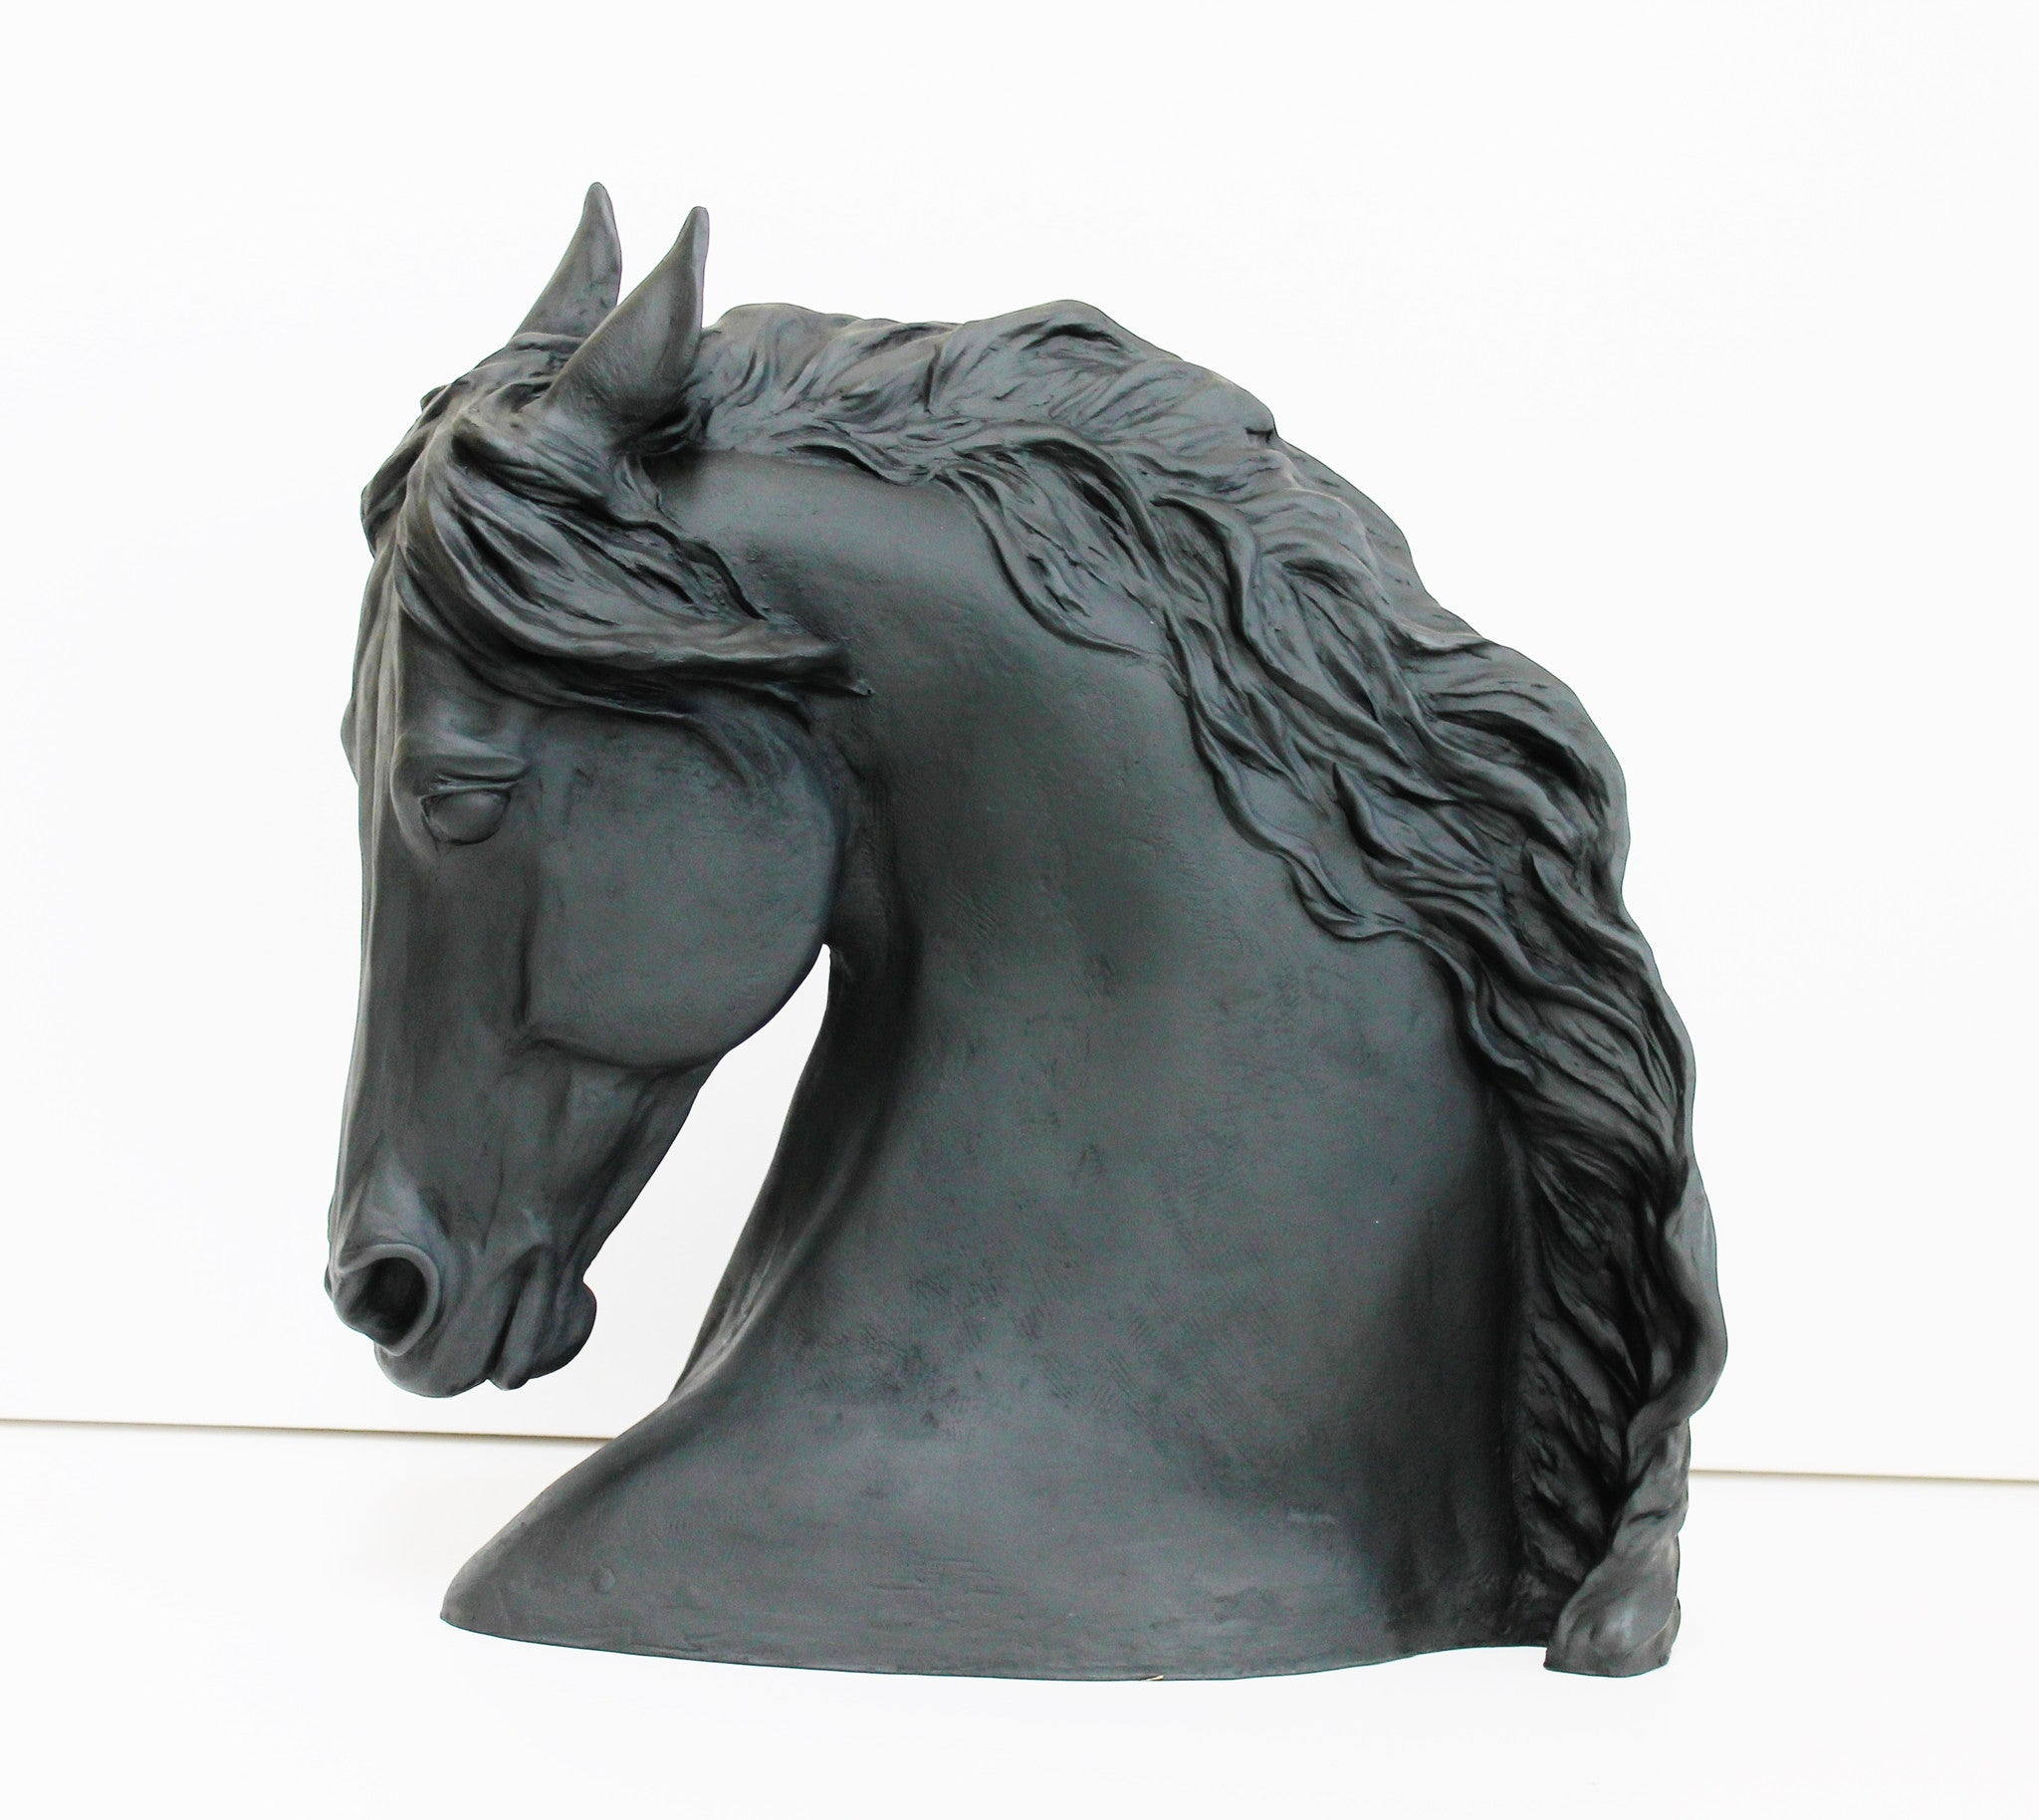 Horse Head Sculpture black color- Patricia Borum - 4